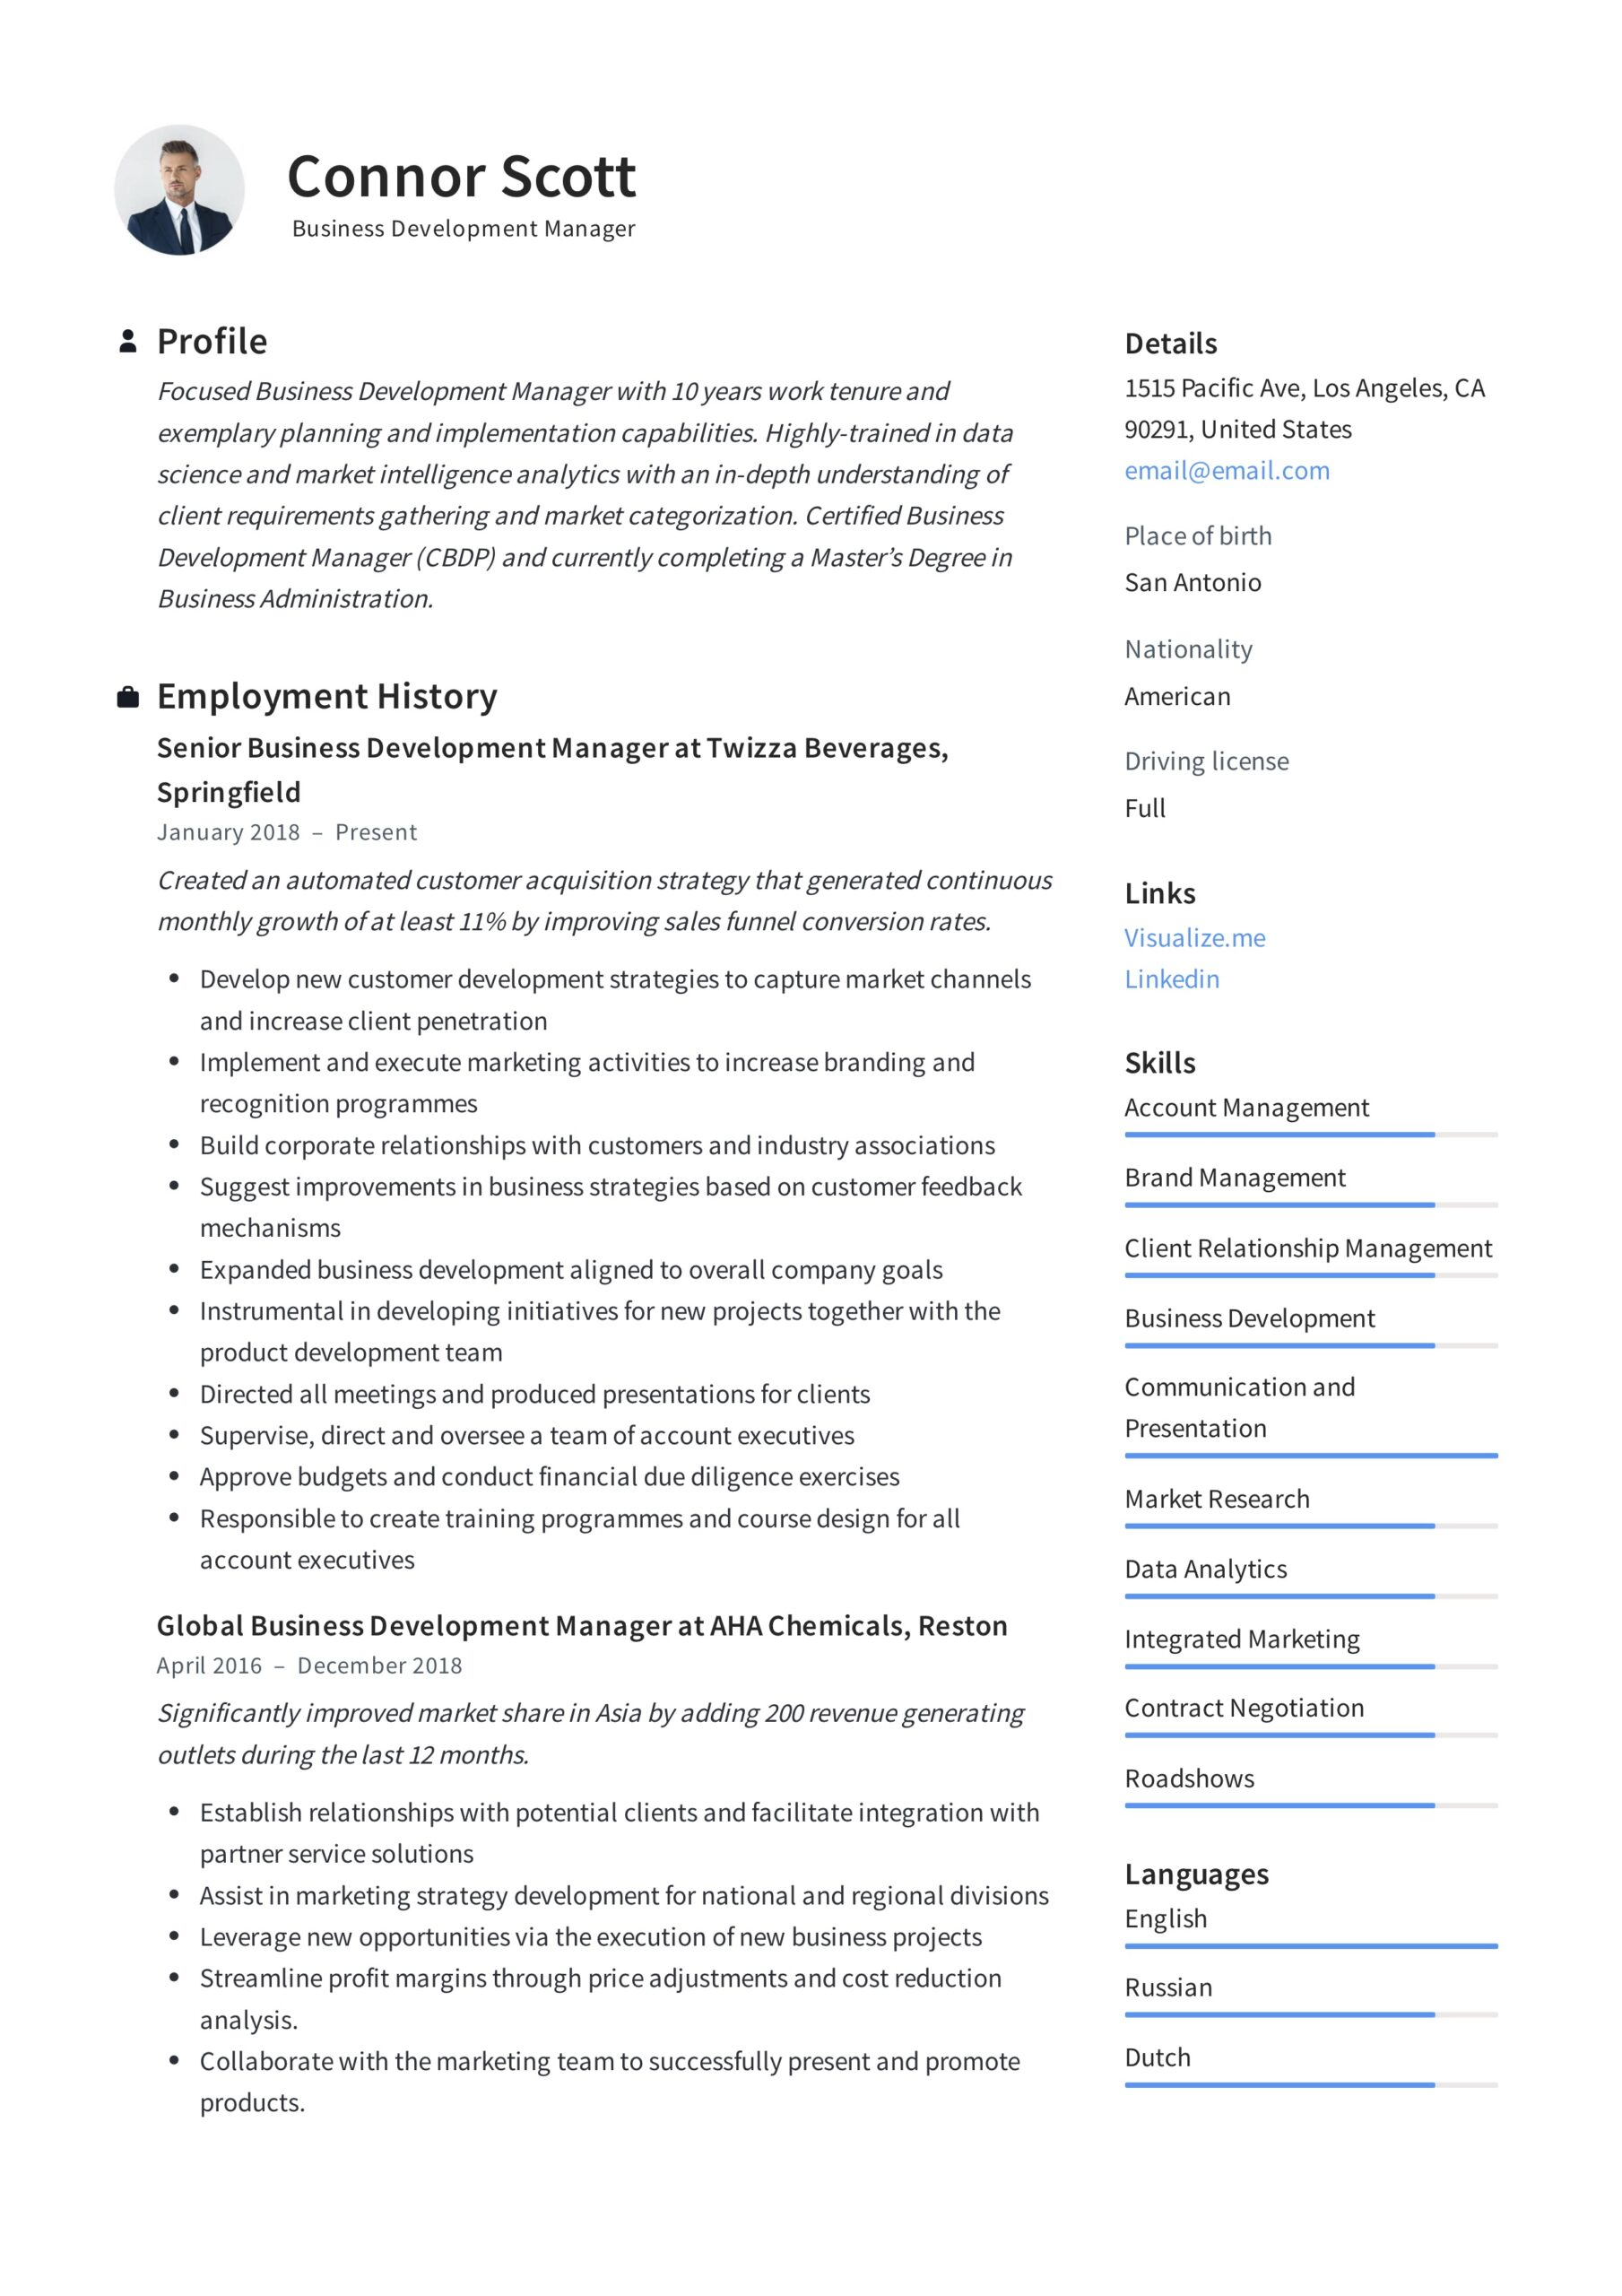 business development manager resume guide templates pdf management example of Resume Business Management Resume Example